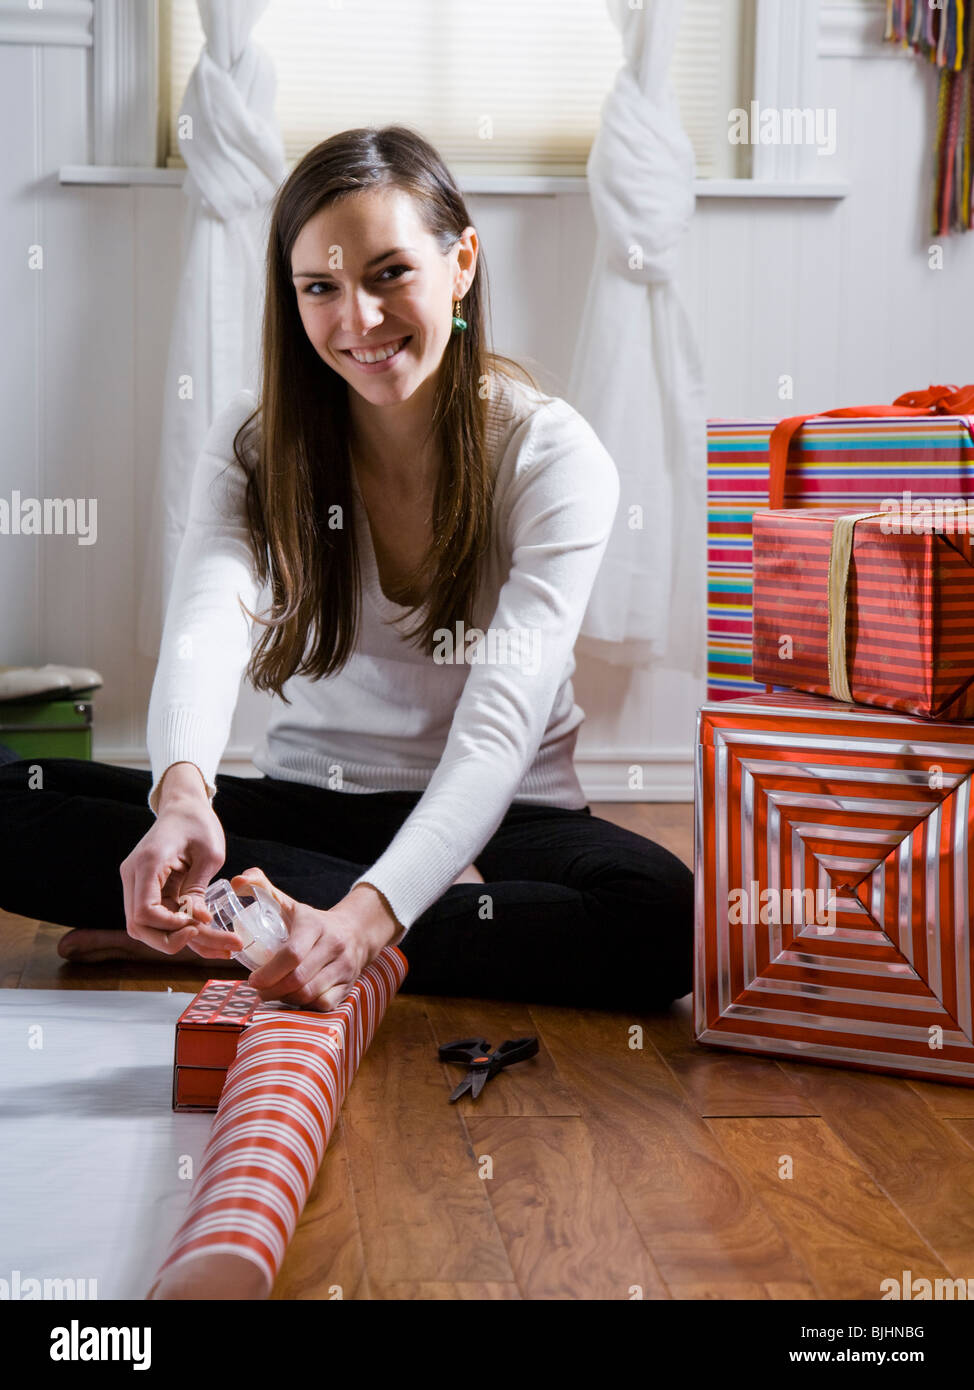 woman sitting on the floor wrapping presents - Stock Image